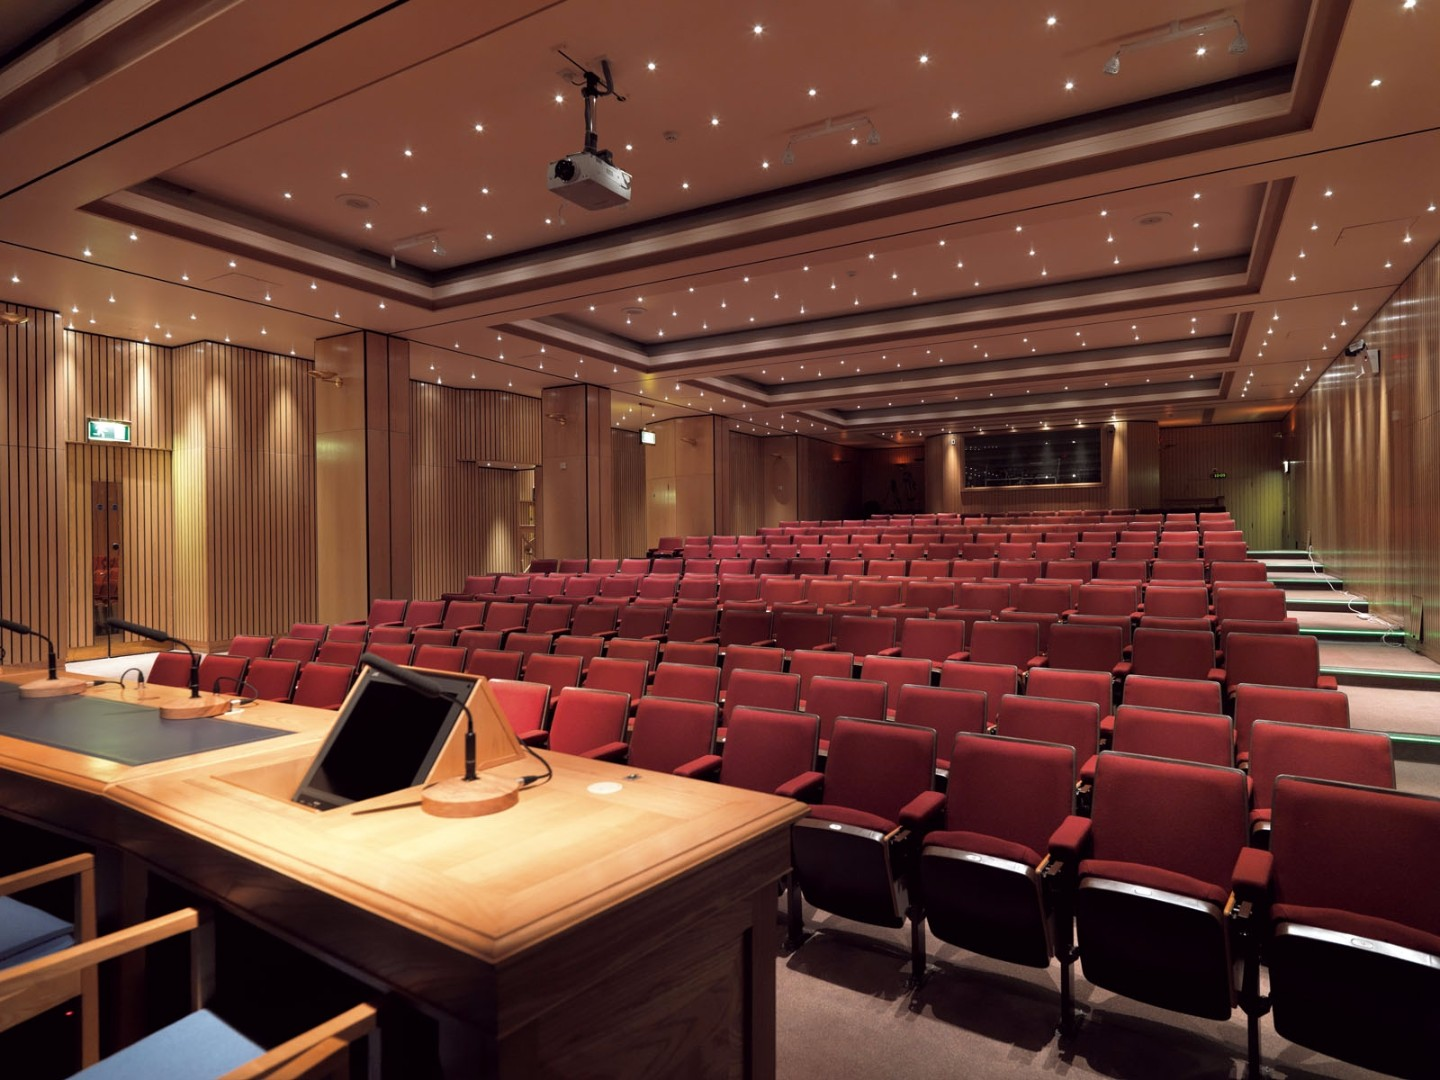 Lecture Room 1 at the Royal College of Surgeons can be hired for conferences and lectures.